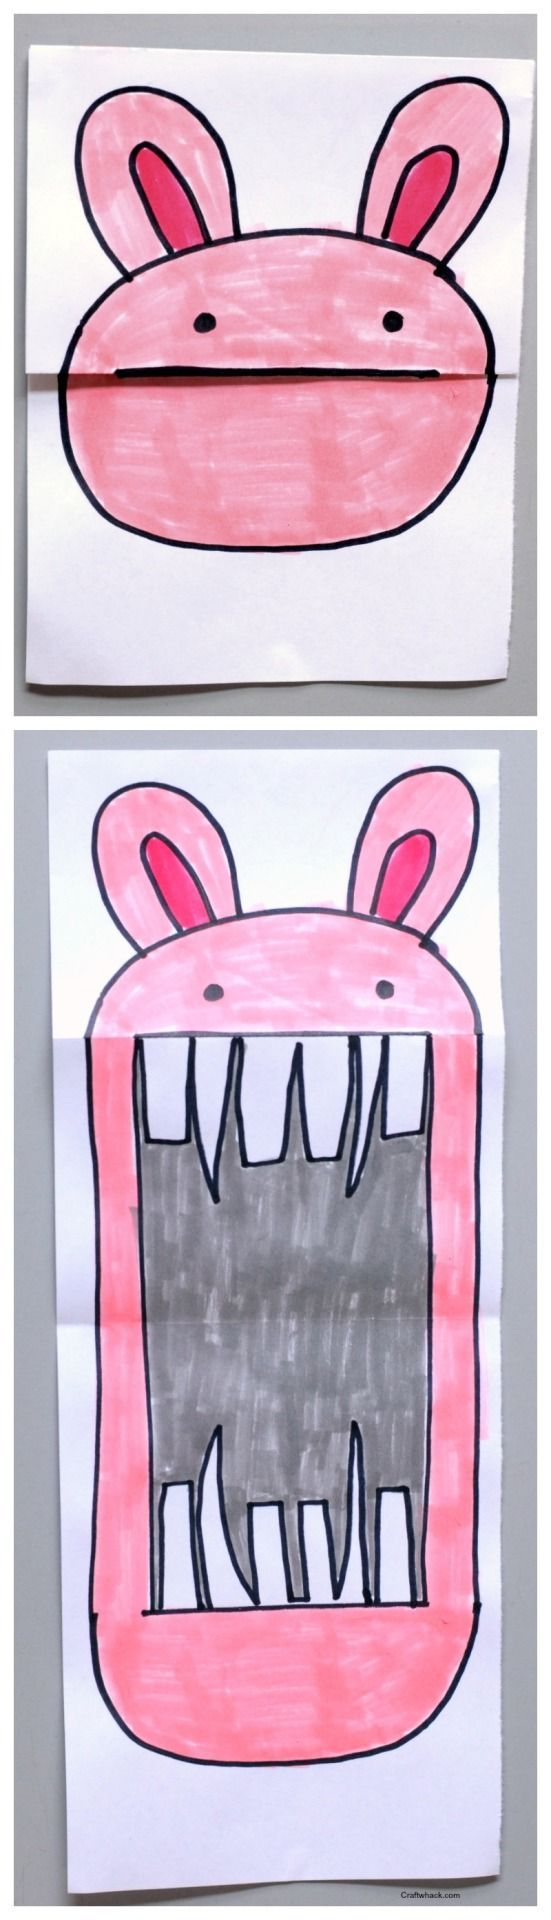 What going on at UnicornHatParty, my DIY Kids' Tumblr blog? DIY Surprise Cards Make folded surprise cards with folded paper. Find the DIY Surprise Cards at Craft Whack here. I created GIFs of the scary surprise cards using the ezgif.com program. All... #artsandcraftsforkidswithpaper,